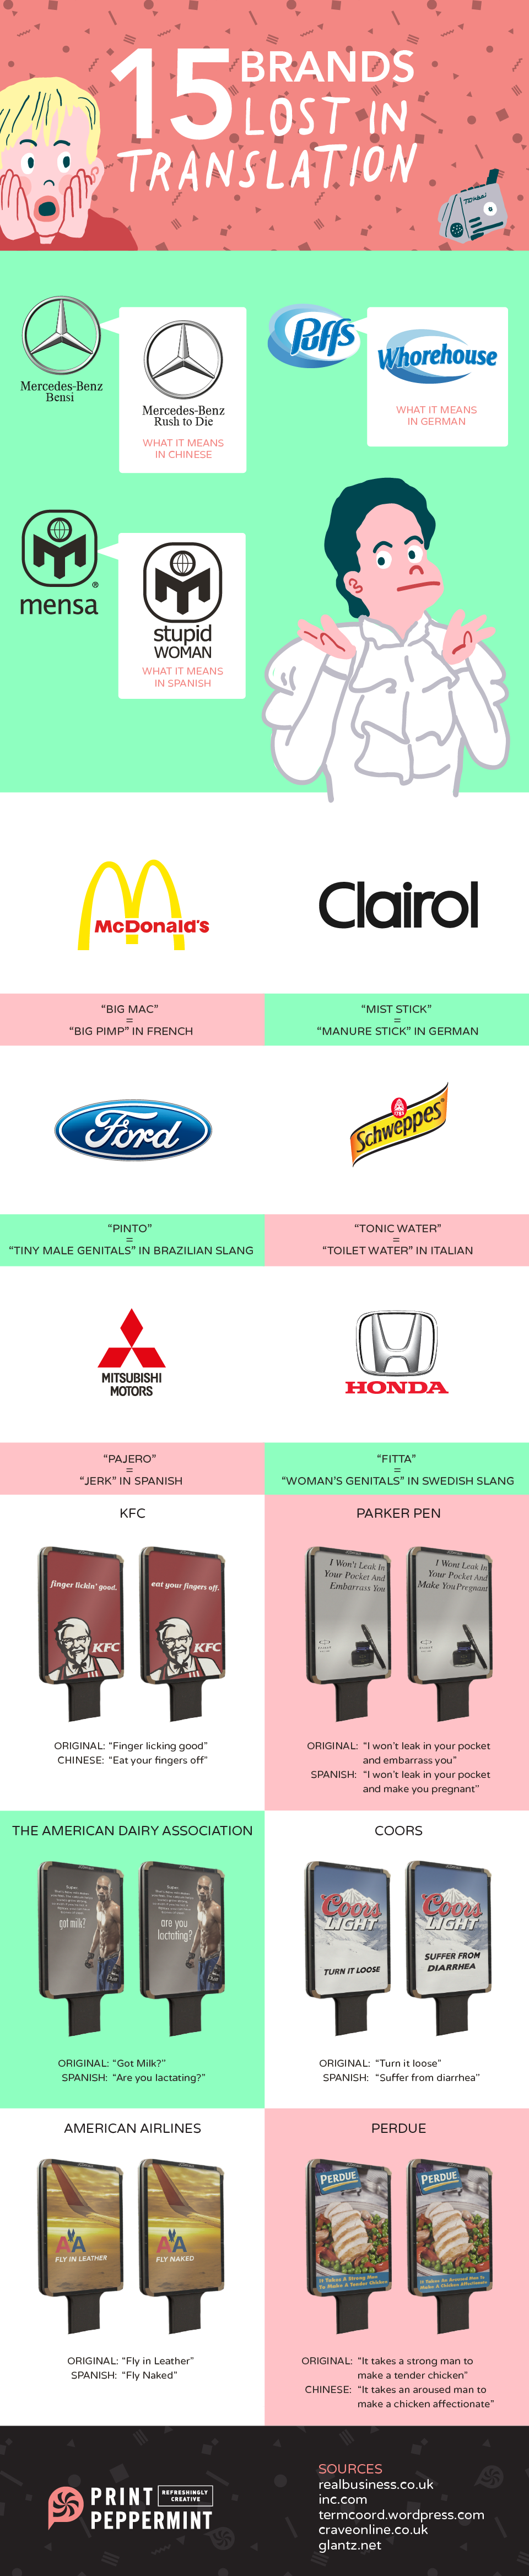 15_brands_lost_in_translation_redesign_v2-white-bg